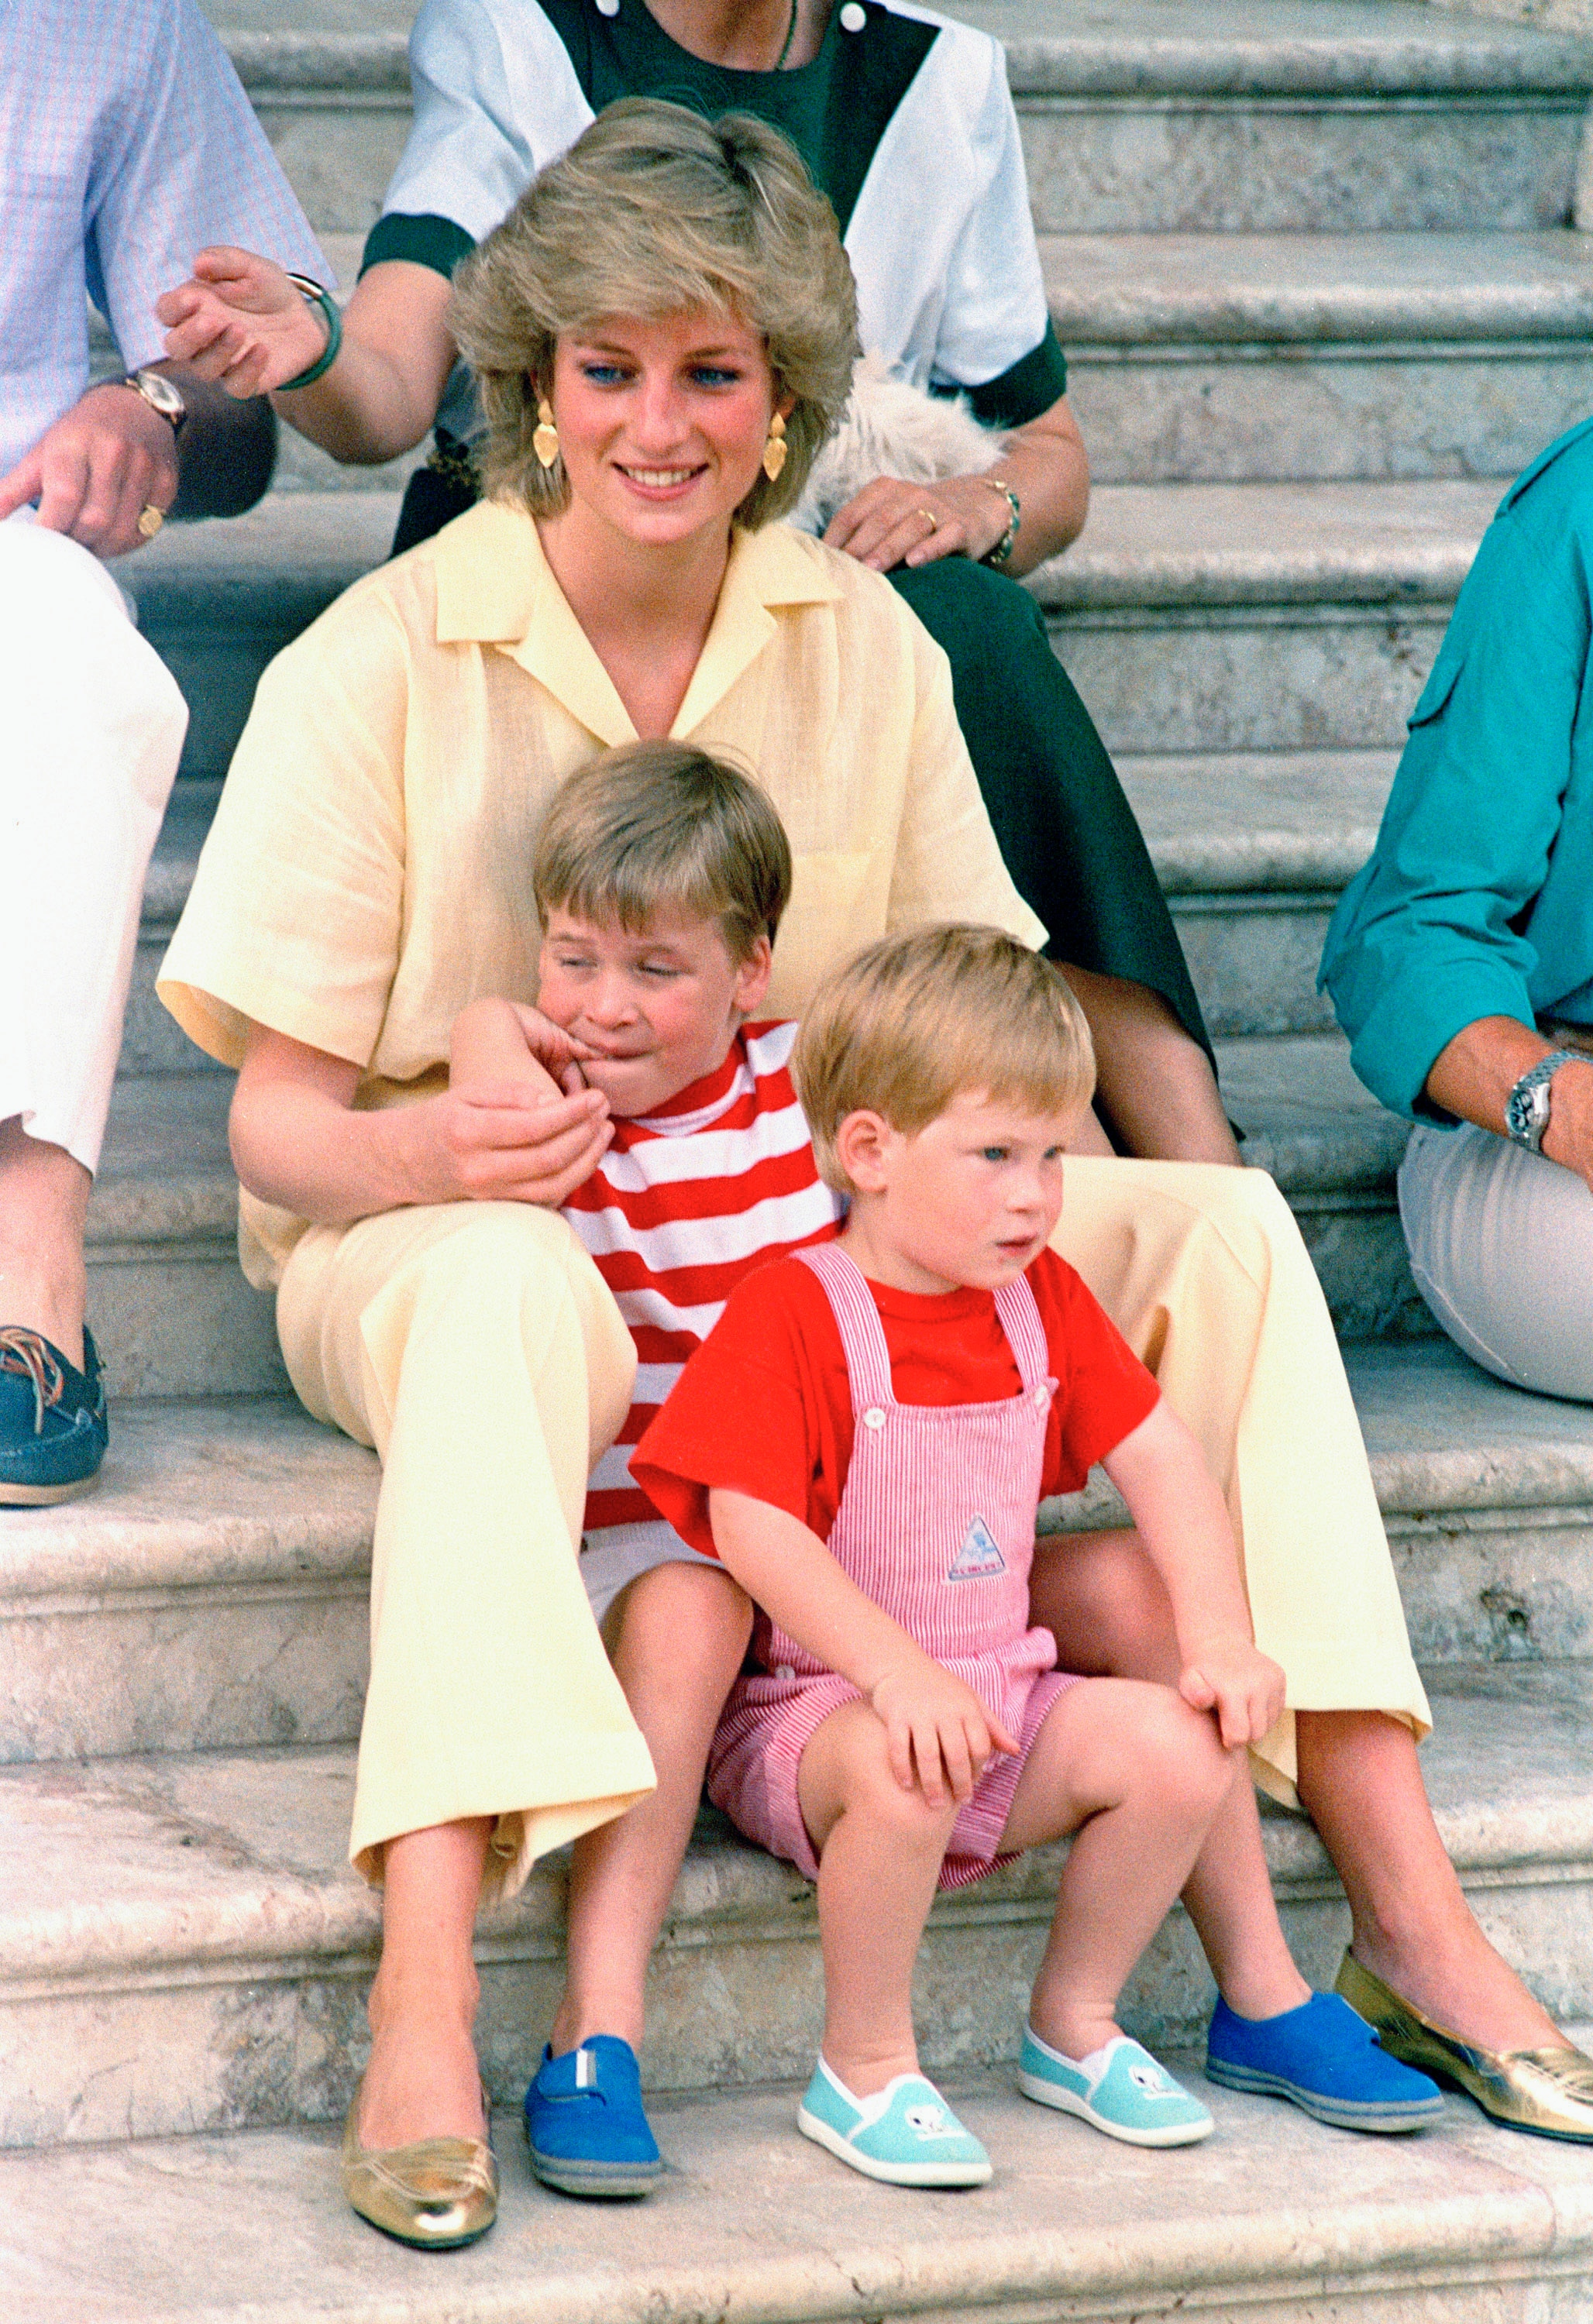 British Princess Diana of Wales smiles as she sits with her sons, Princes Harry, in the foreground, and William, on the steps of the Royal Palace on the island of Mallorca, Spain.  In a monotonous style, she adds a touch of glitter with her accessories.  (PA)